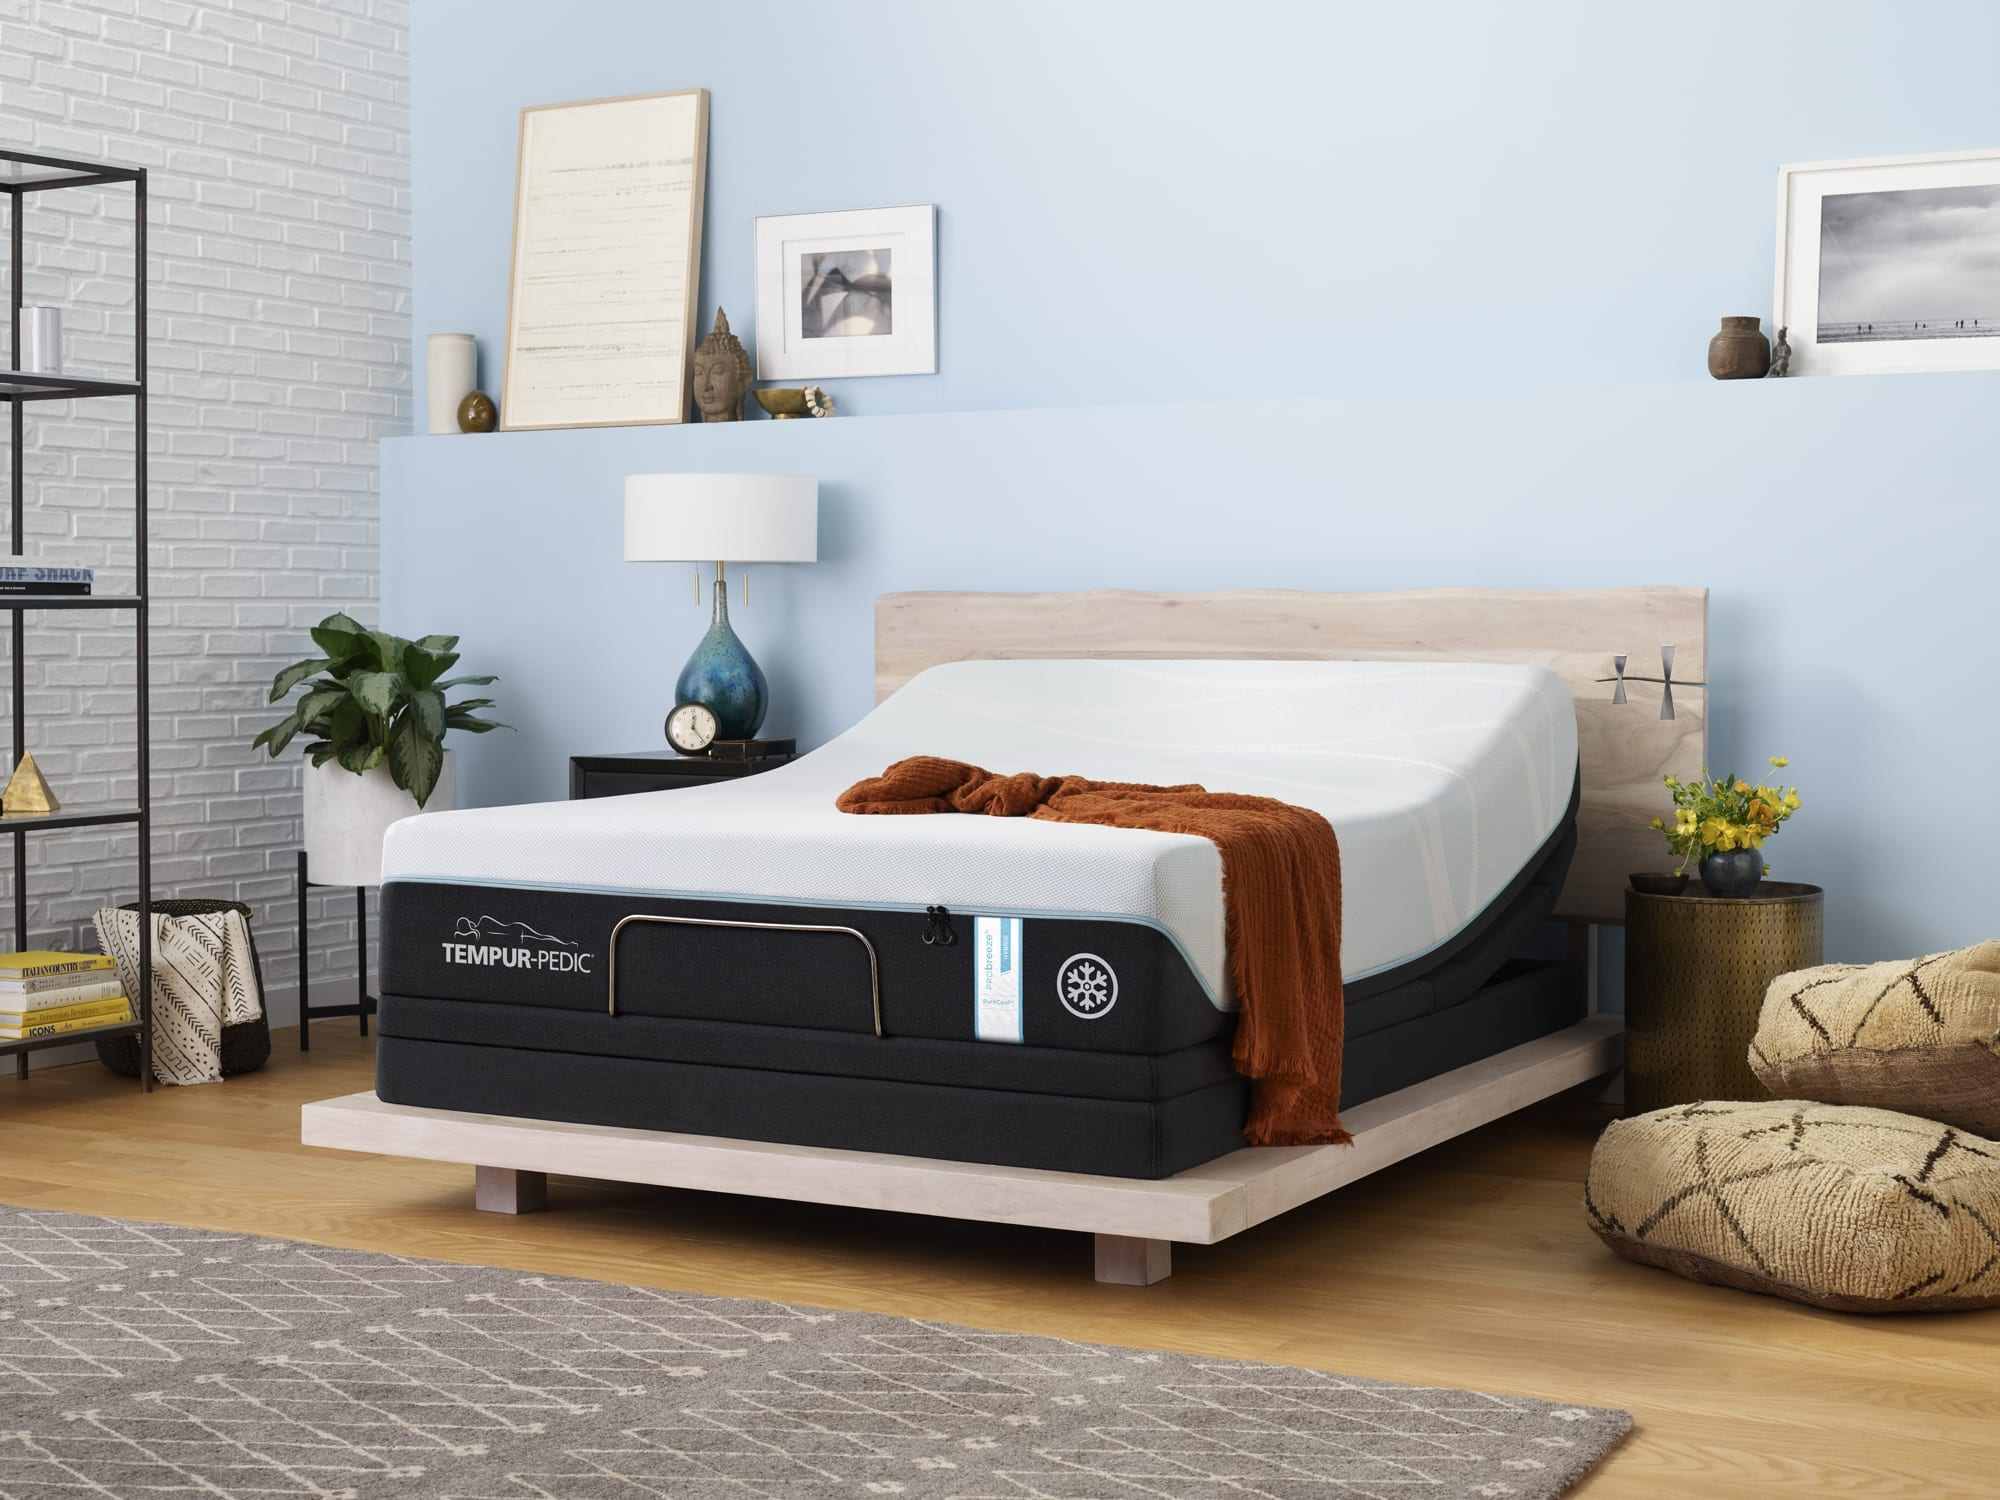 Tempur-Pedic mattress